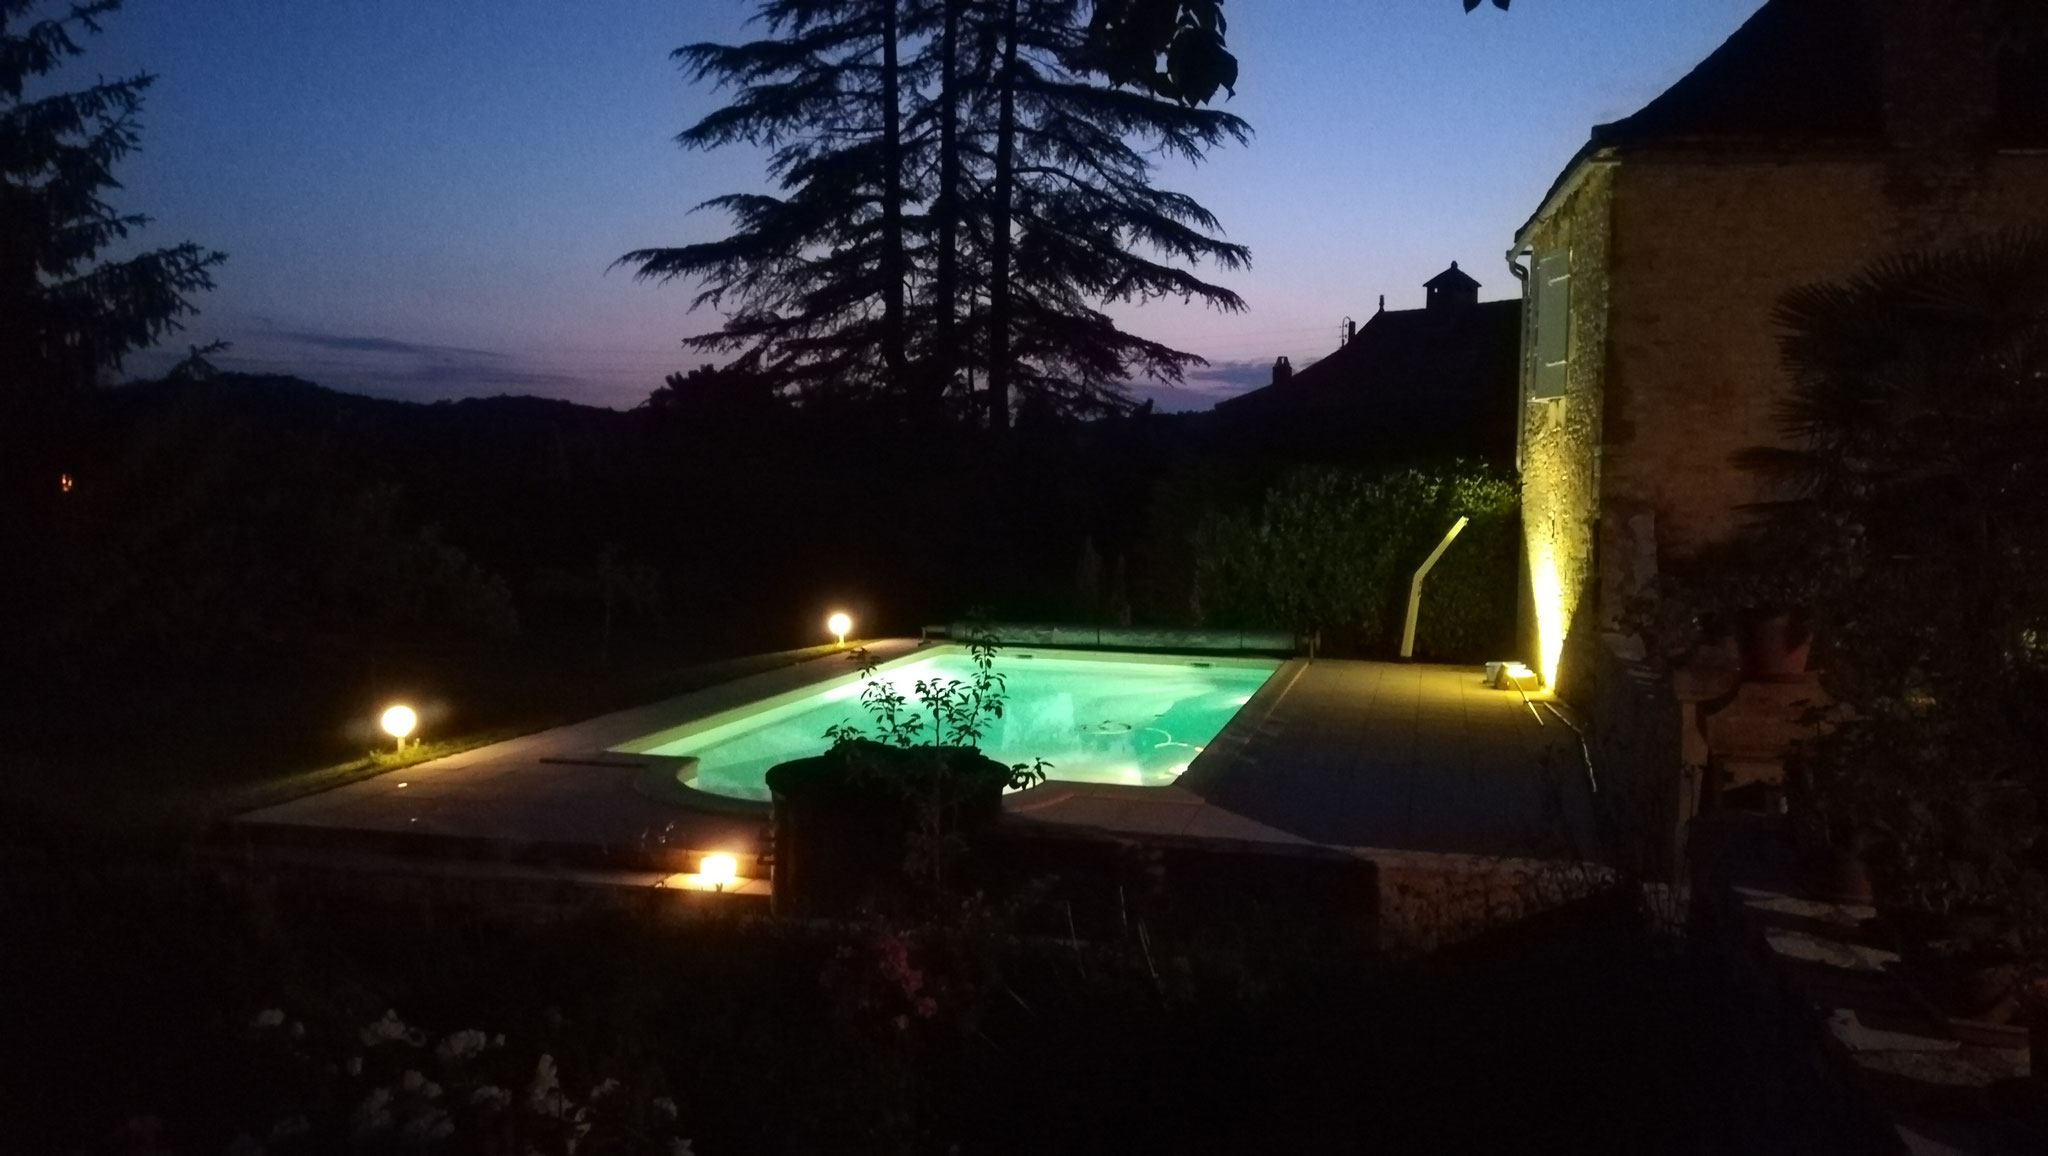 Domaine de Vielcastel, enjoy the illuminated swimming pool at night